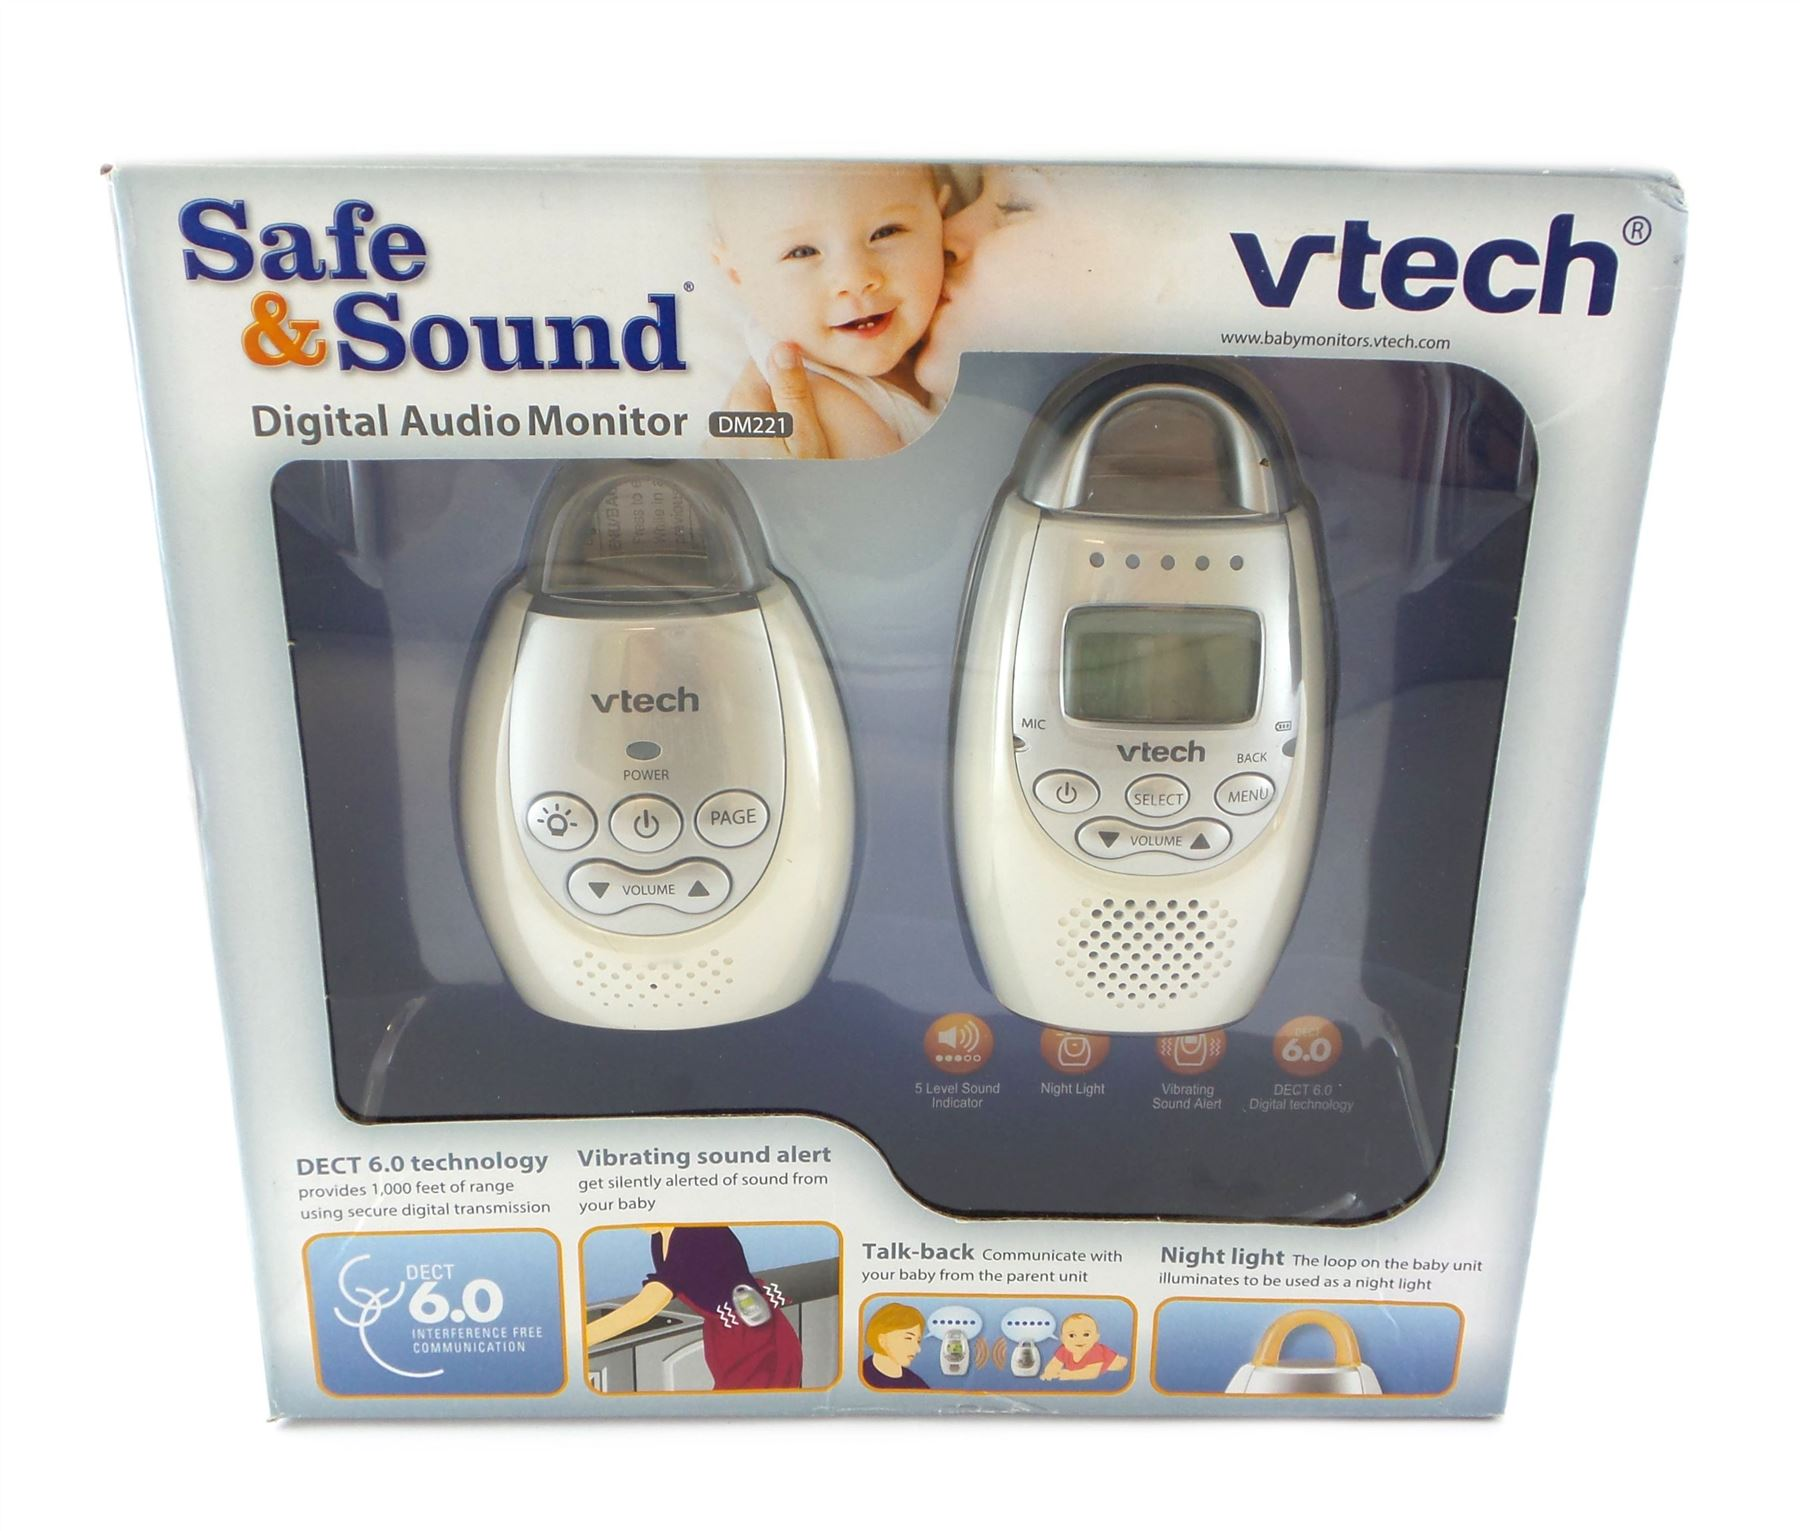 Vtech Safe /& Sound Digital Audio Baby Monitor 2 Way Talk DECT 6.0 DM221 White